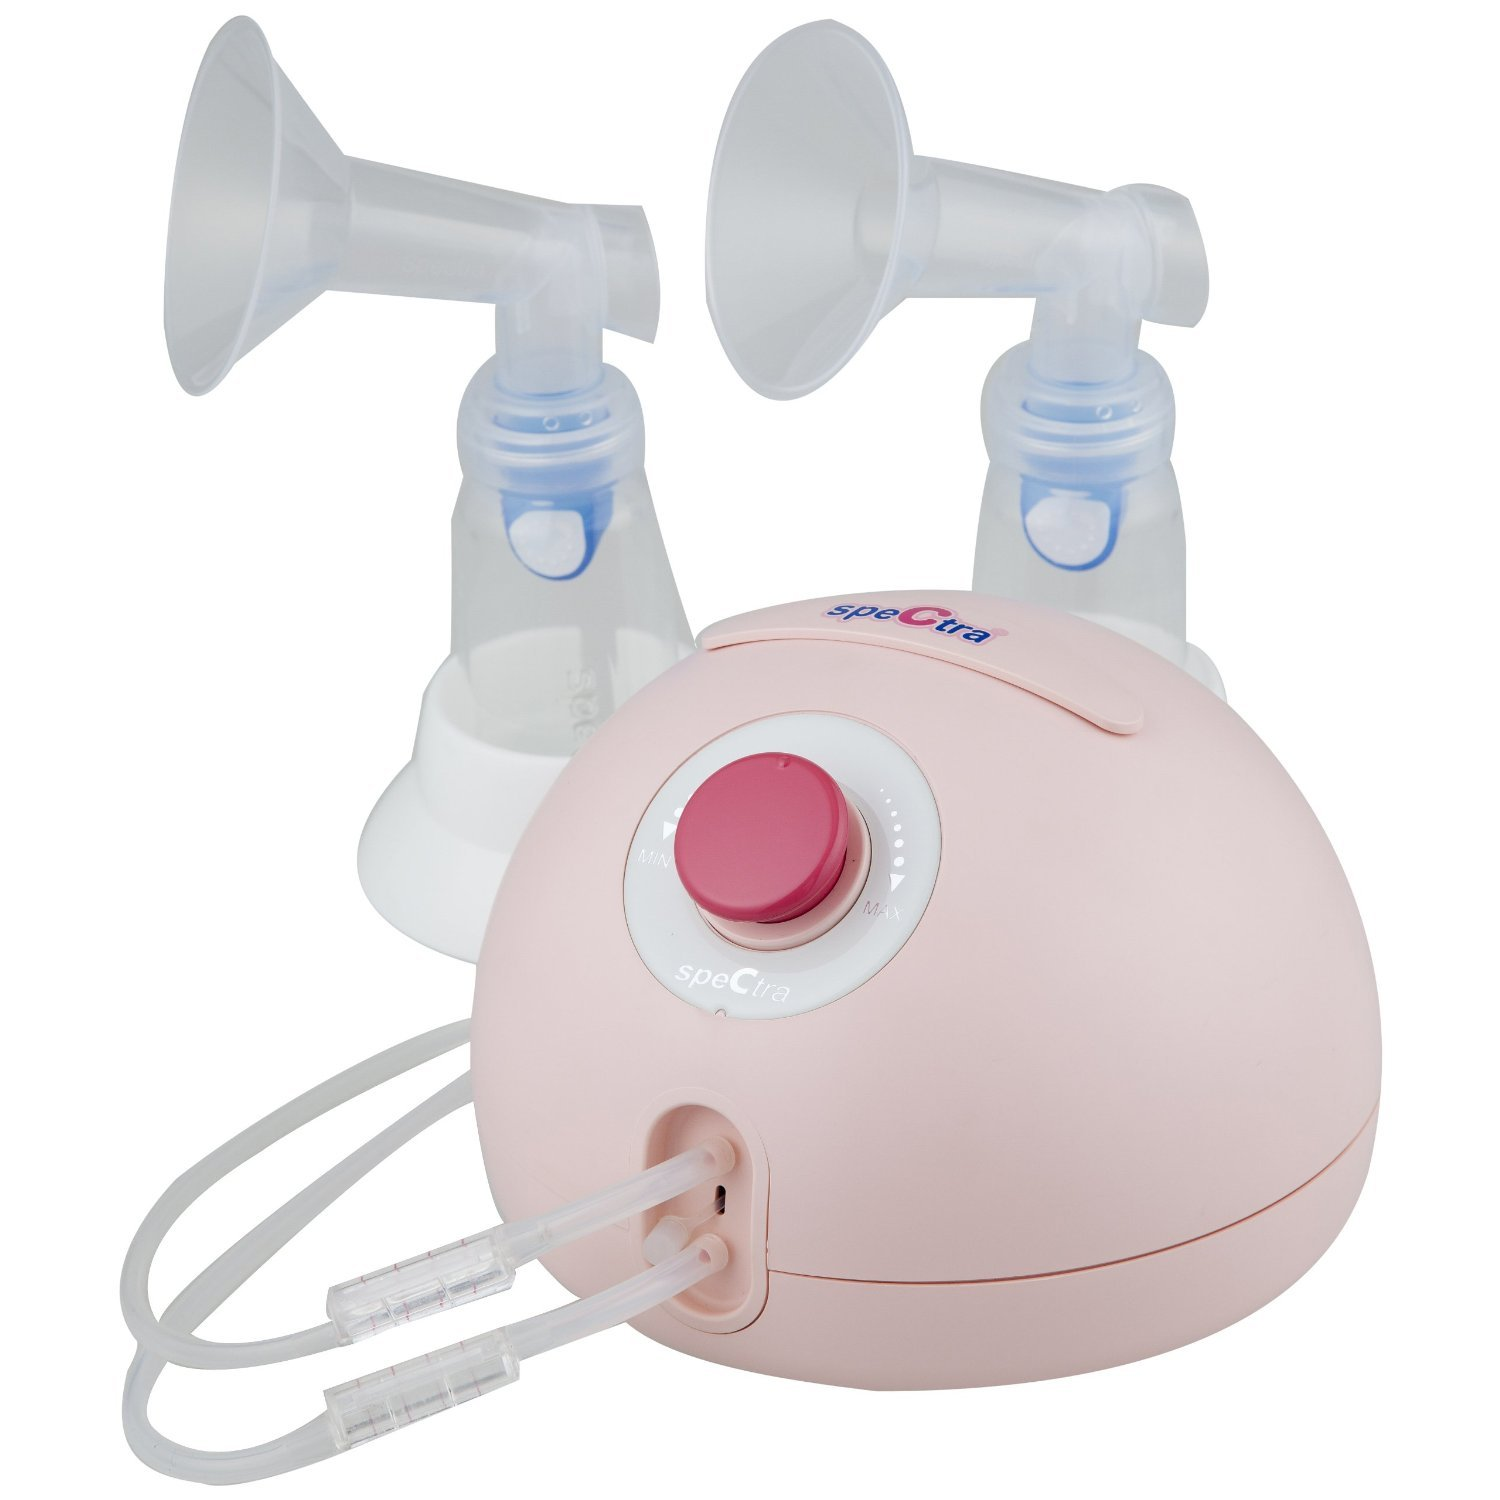 Spectra Baby USA Dew 350 Hospital Grade Electric Breast Pump, Pink